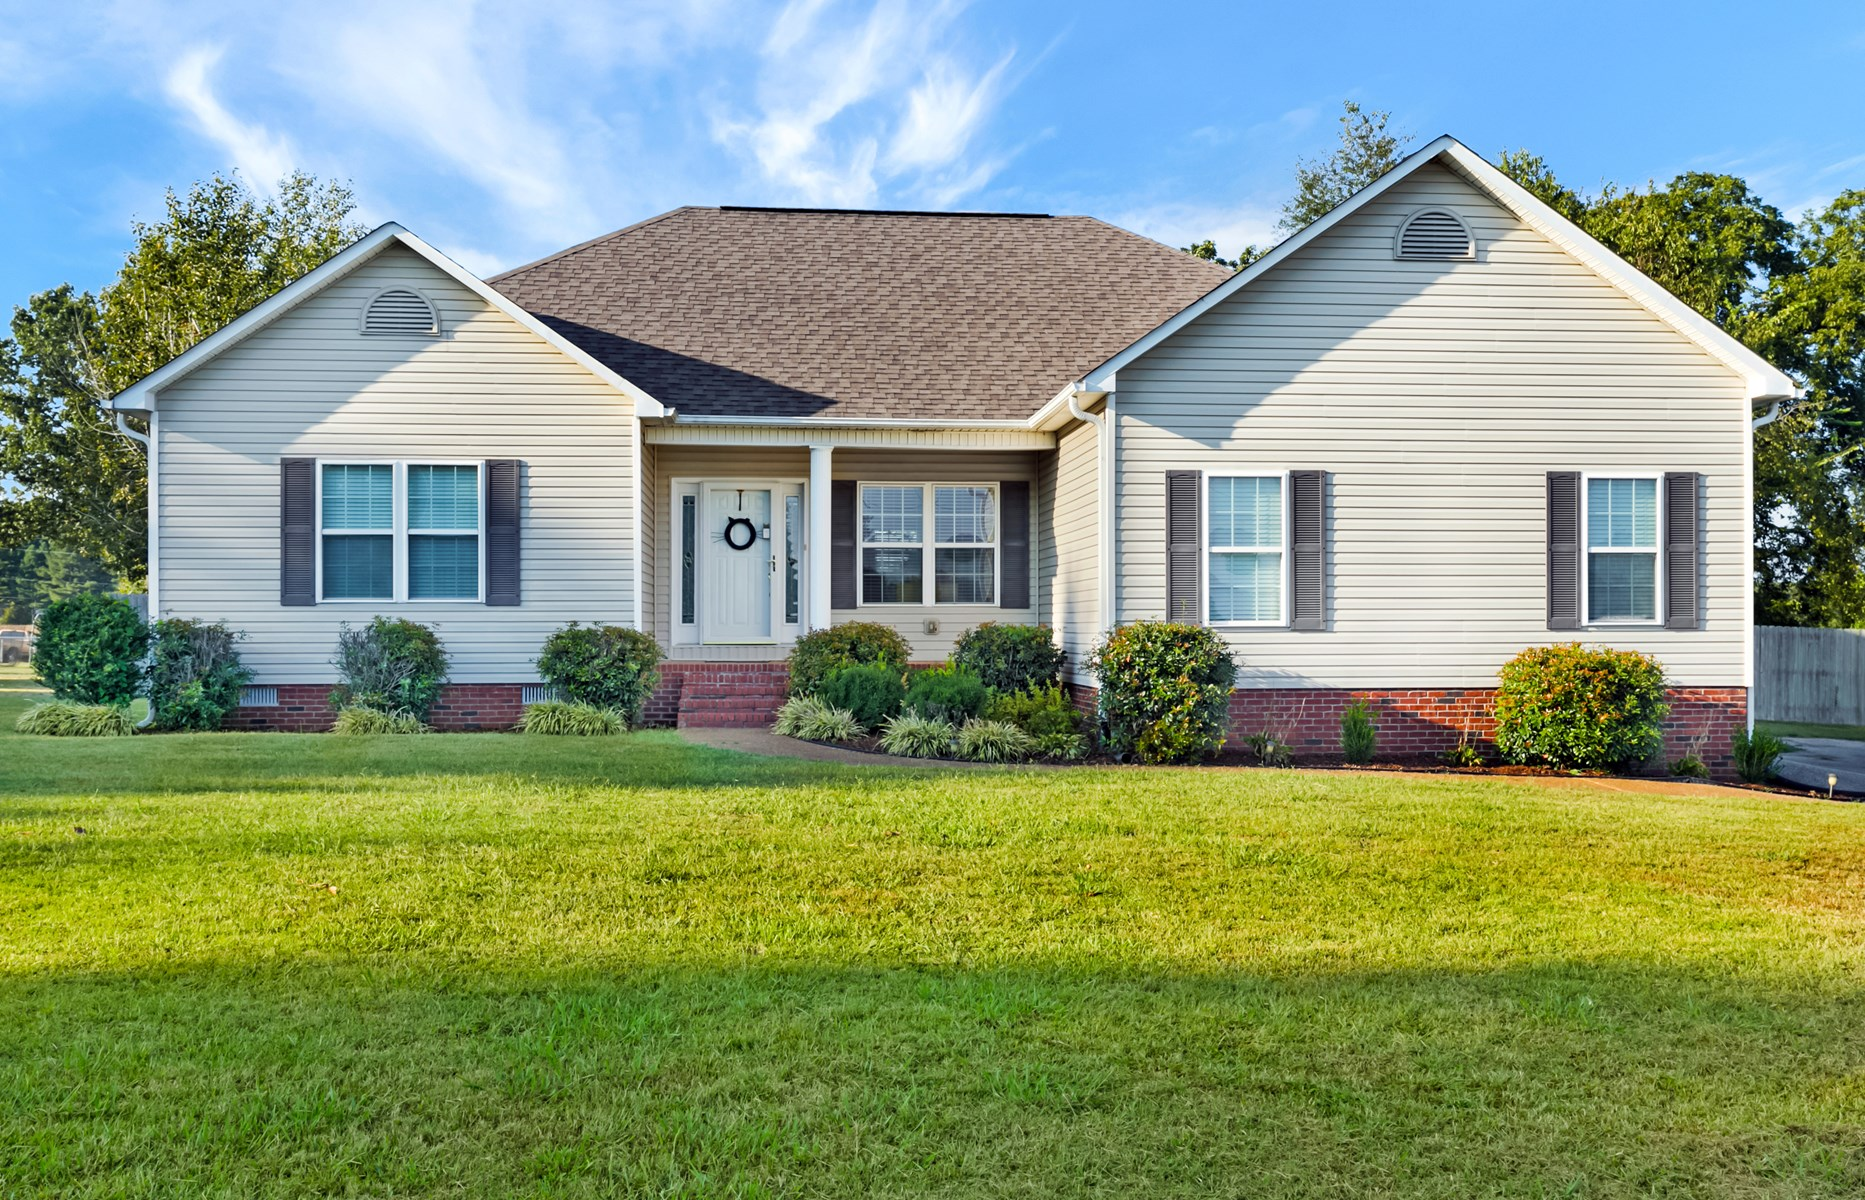 3 BR / 2BA Home for Sale on Large Lot - Milan, Tennessee